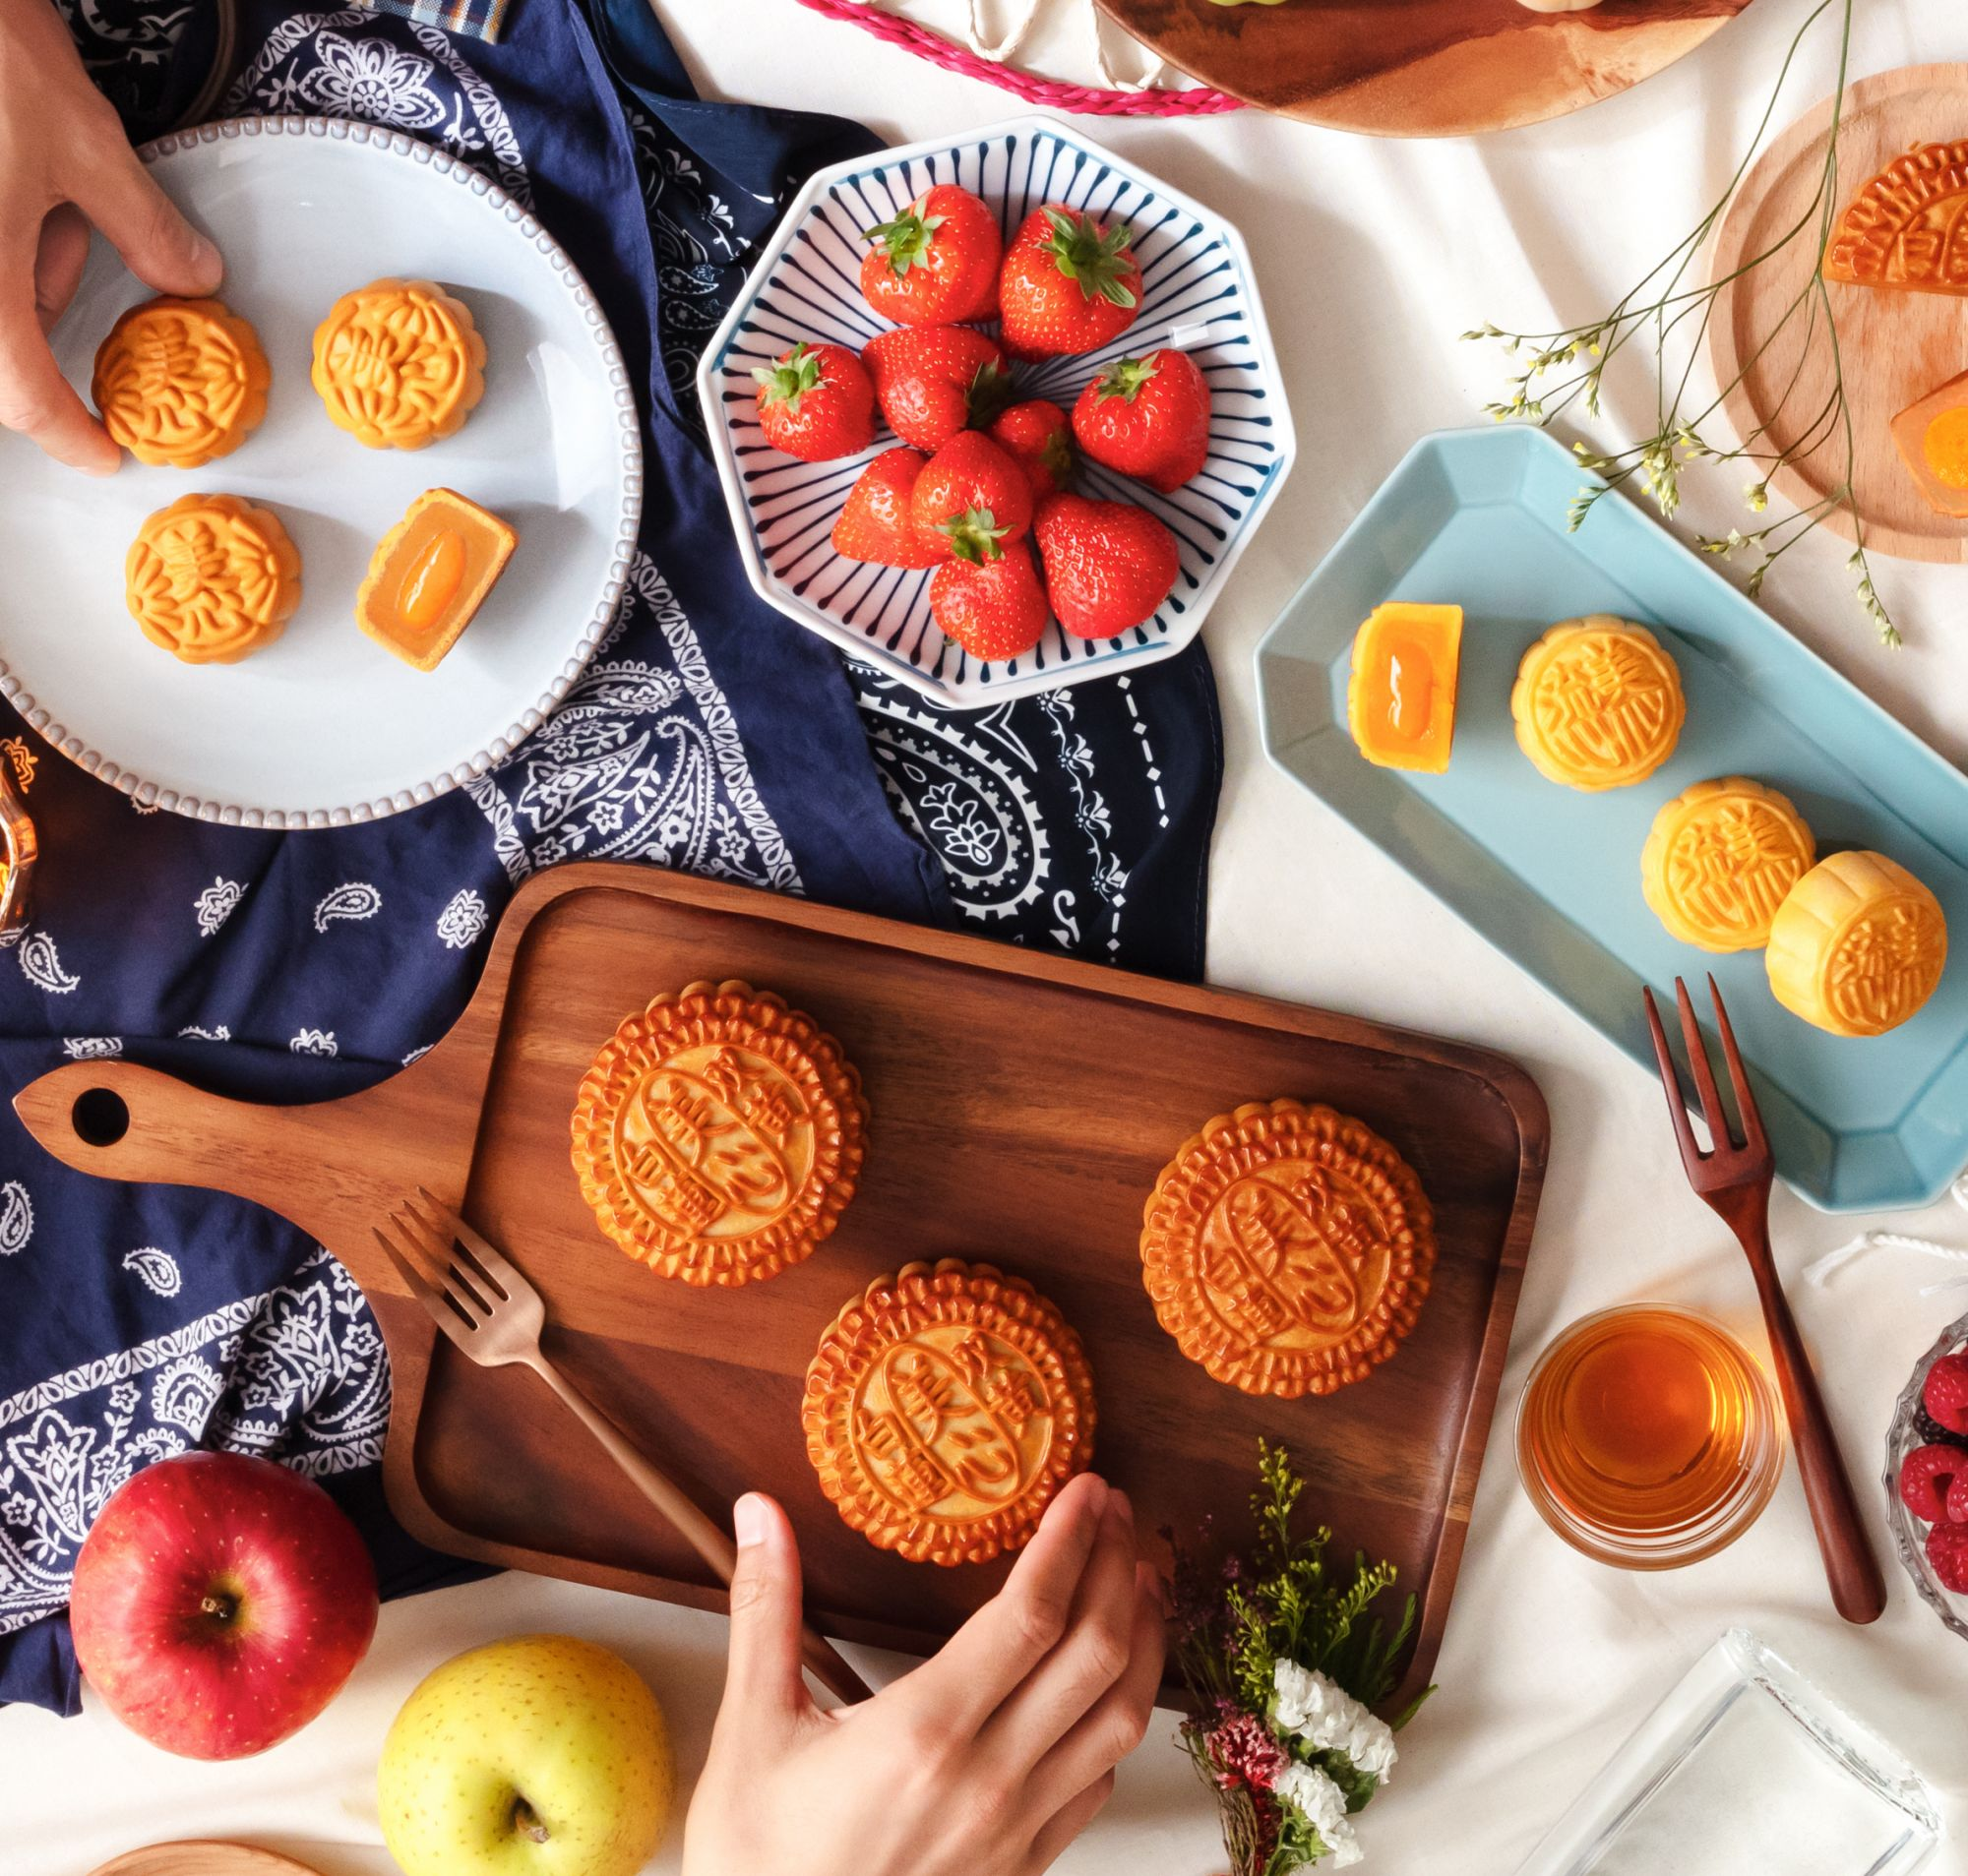 7 Places Where You Can Get Exceptional Mooncakes Before The Mid-Autumn Festival